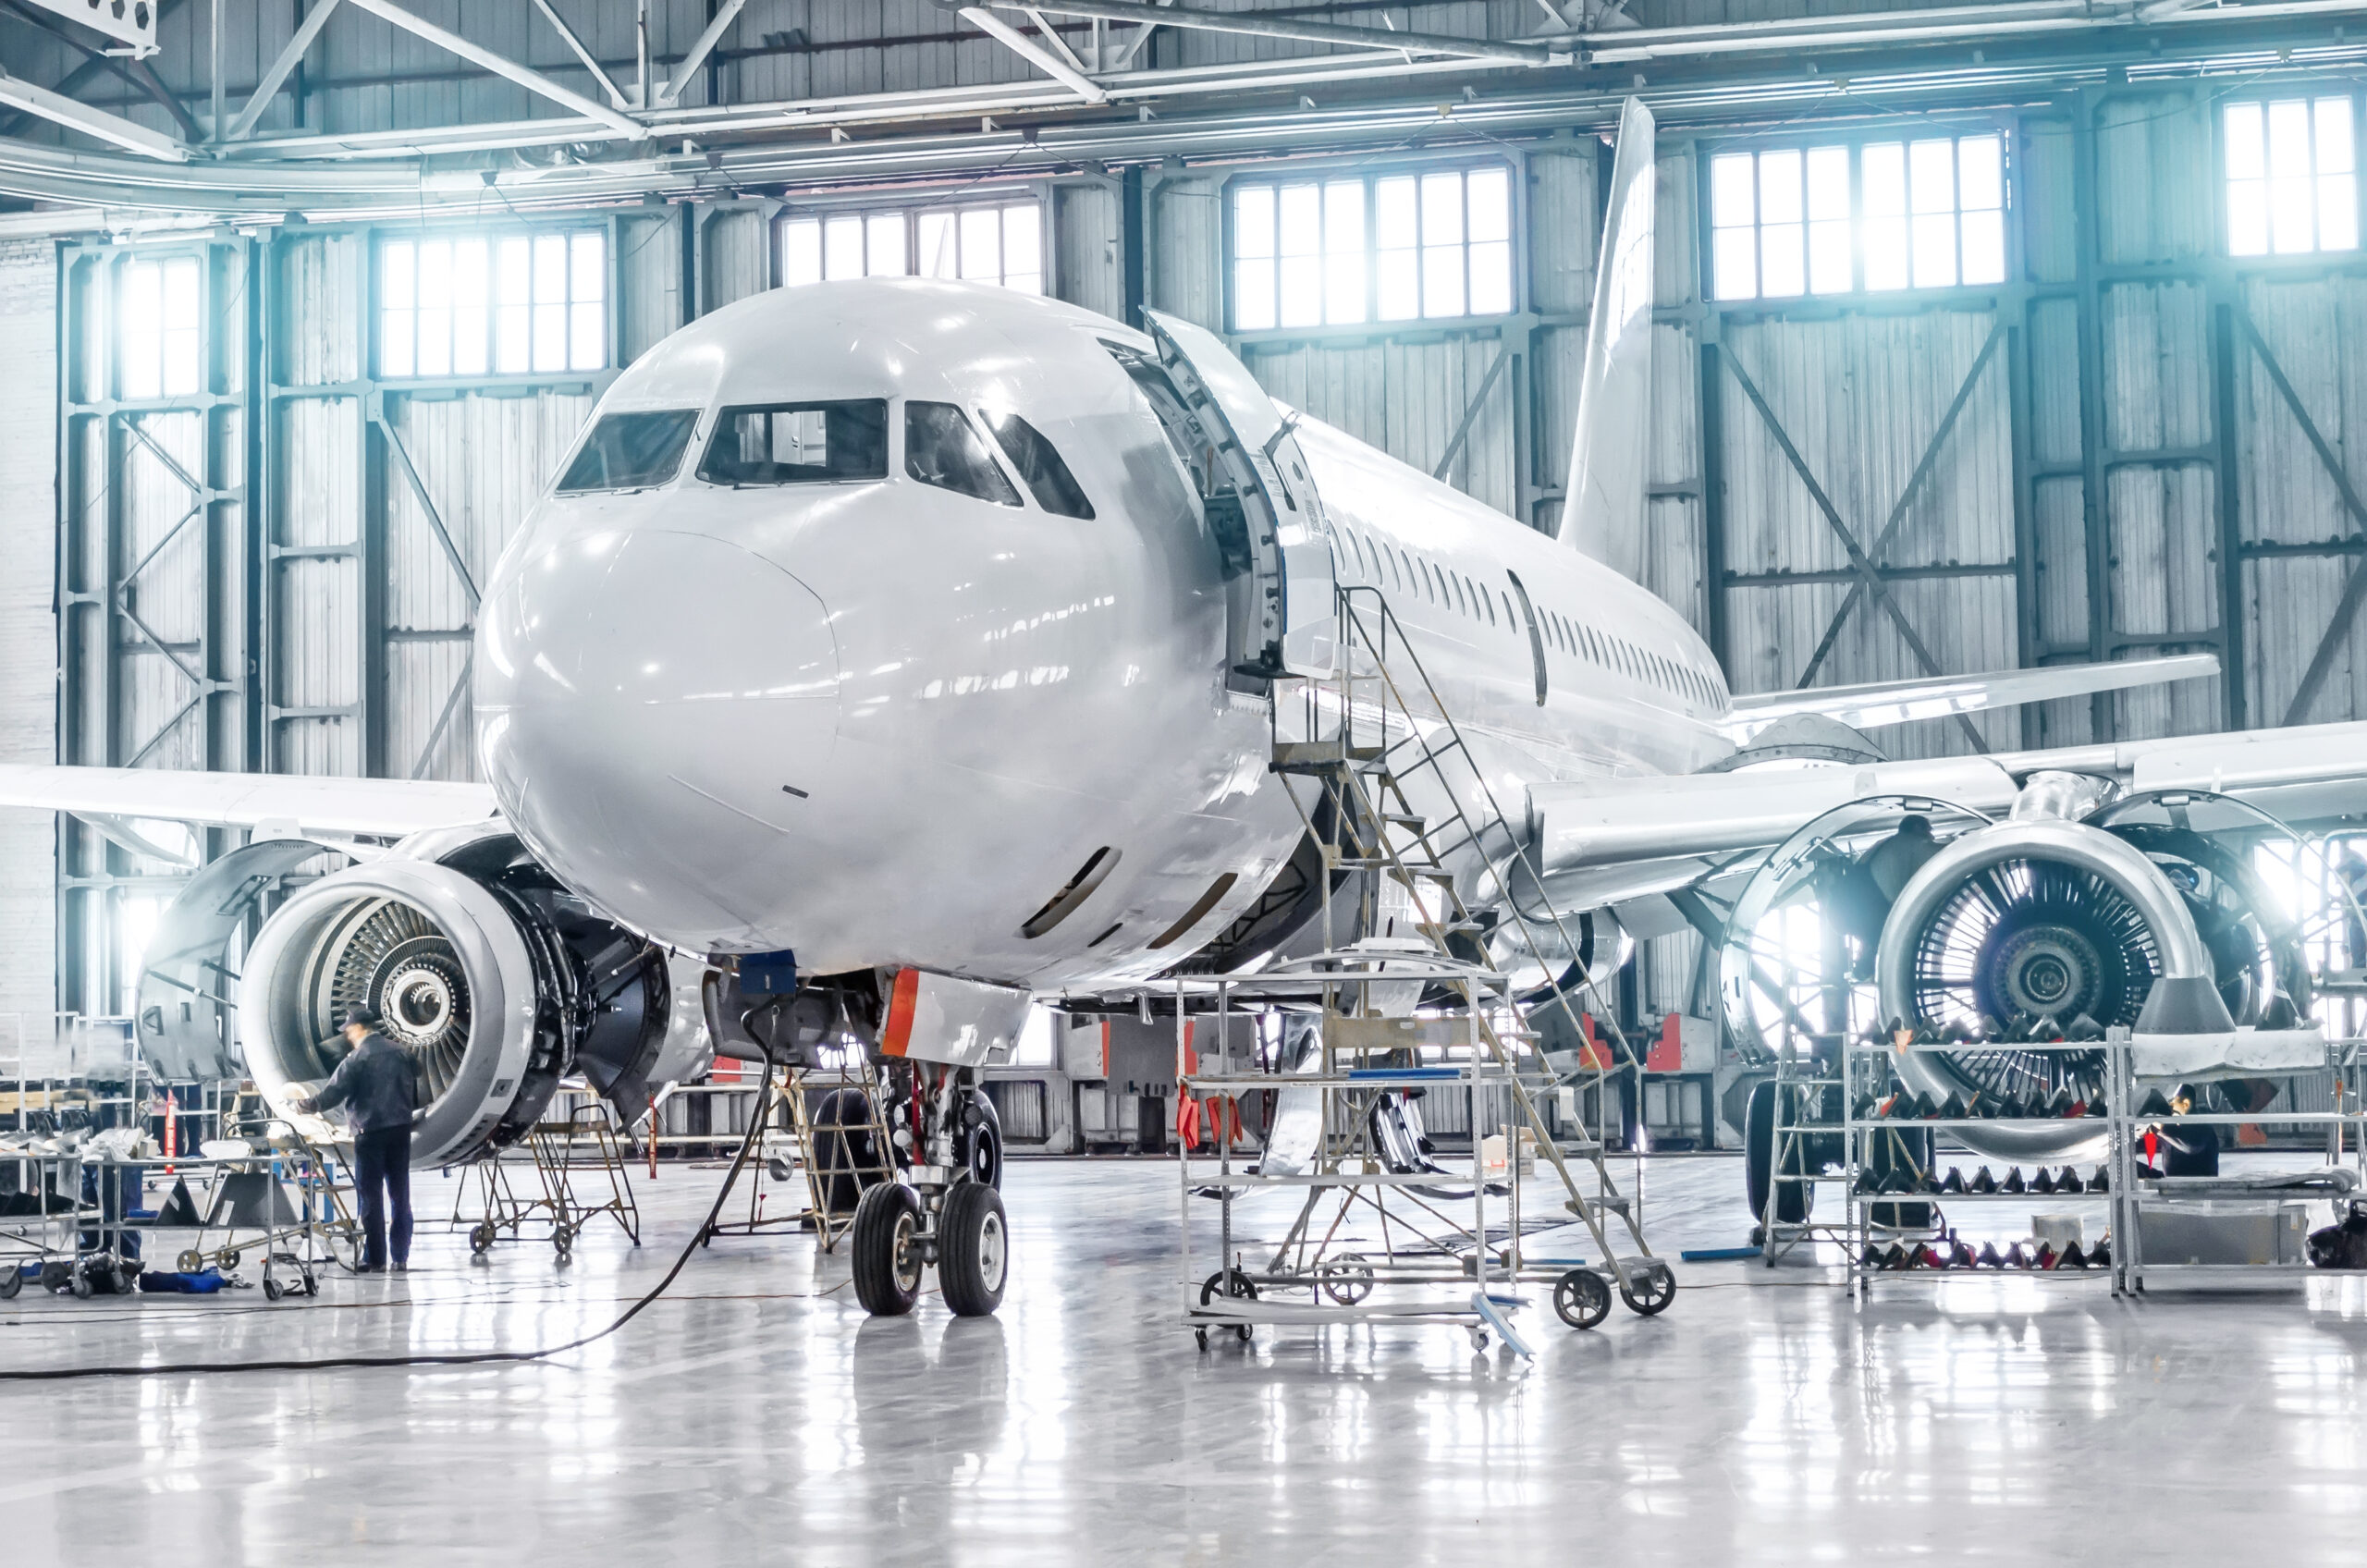 Commercial aircraft maintenance inspection